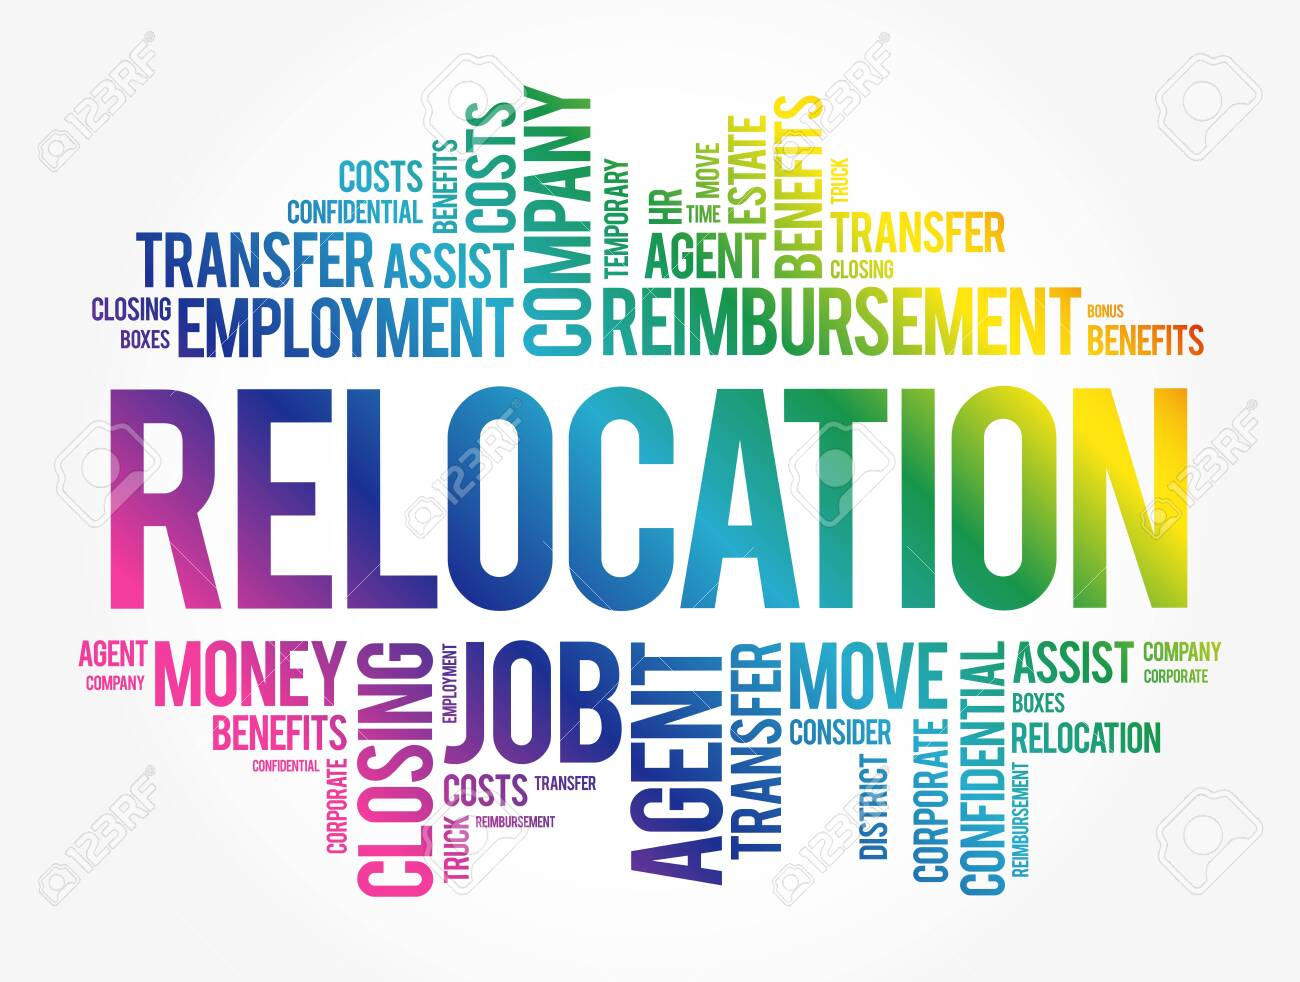 Relocation word cloud collage, business concept background - 143714262